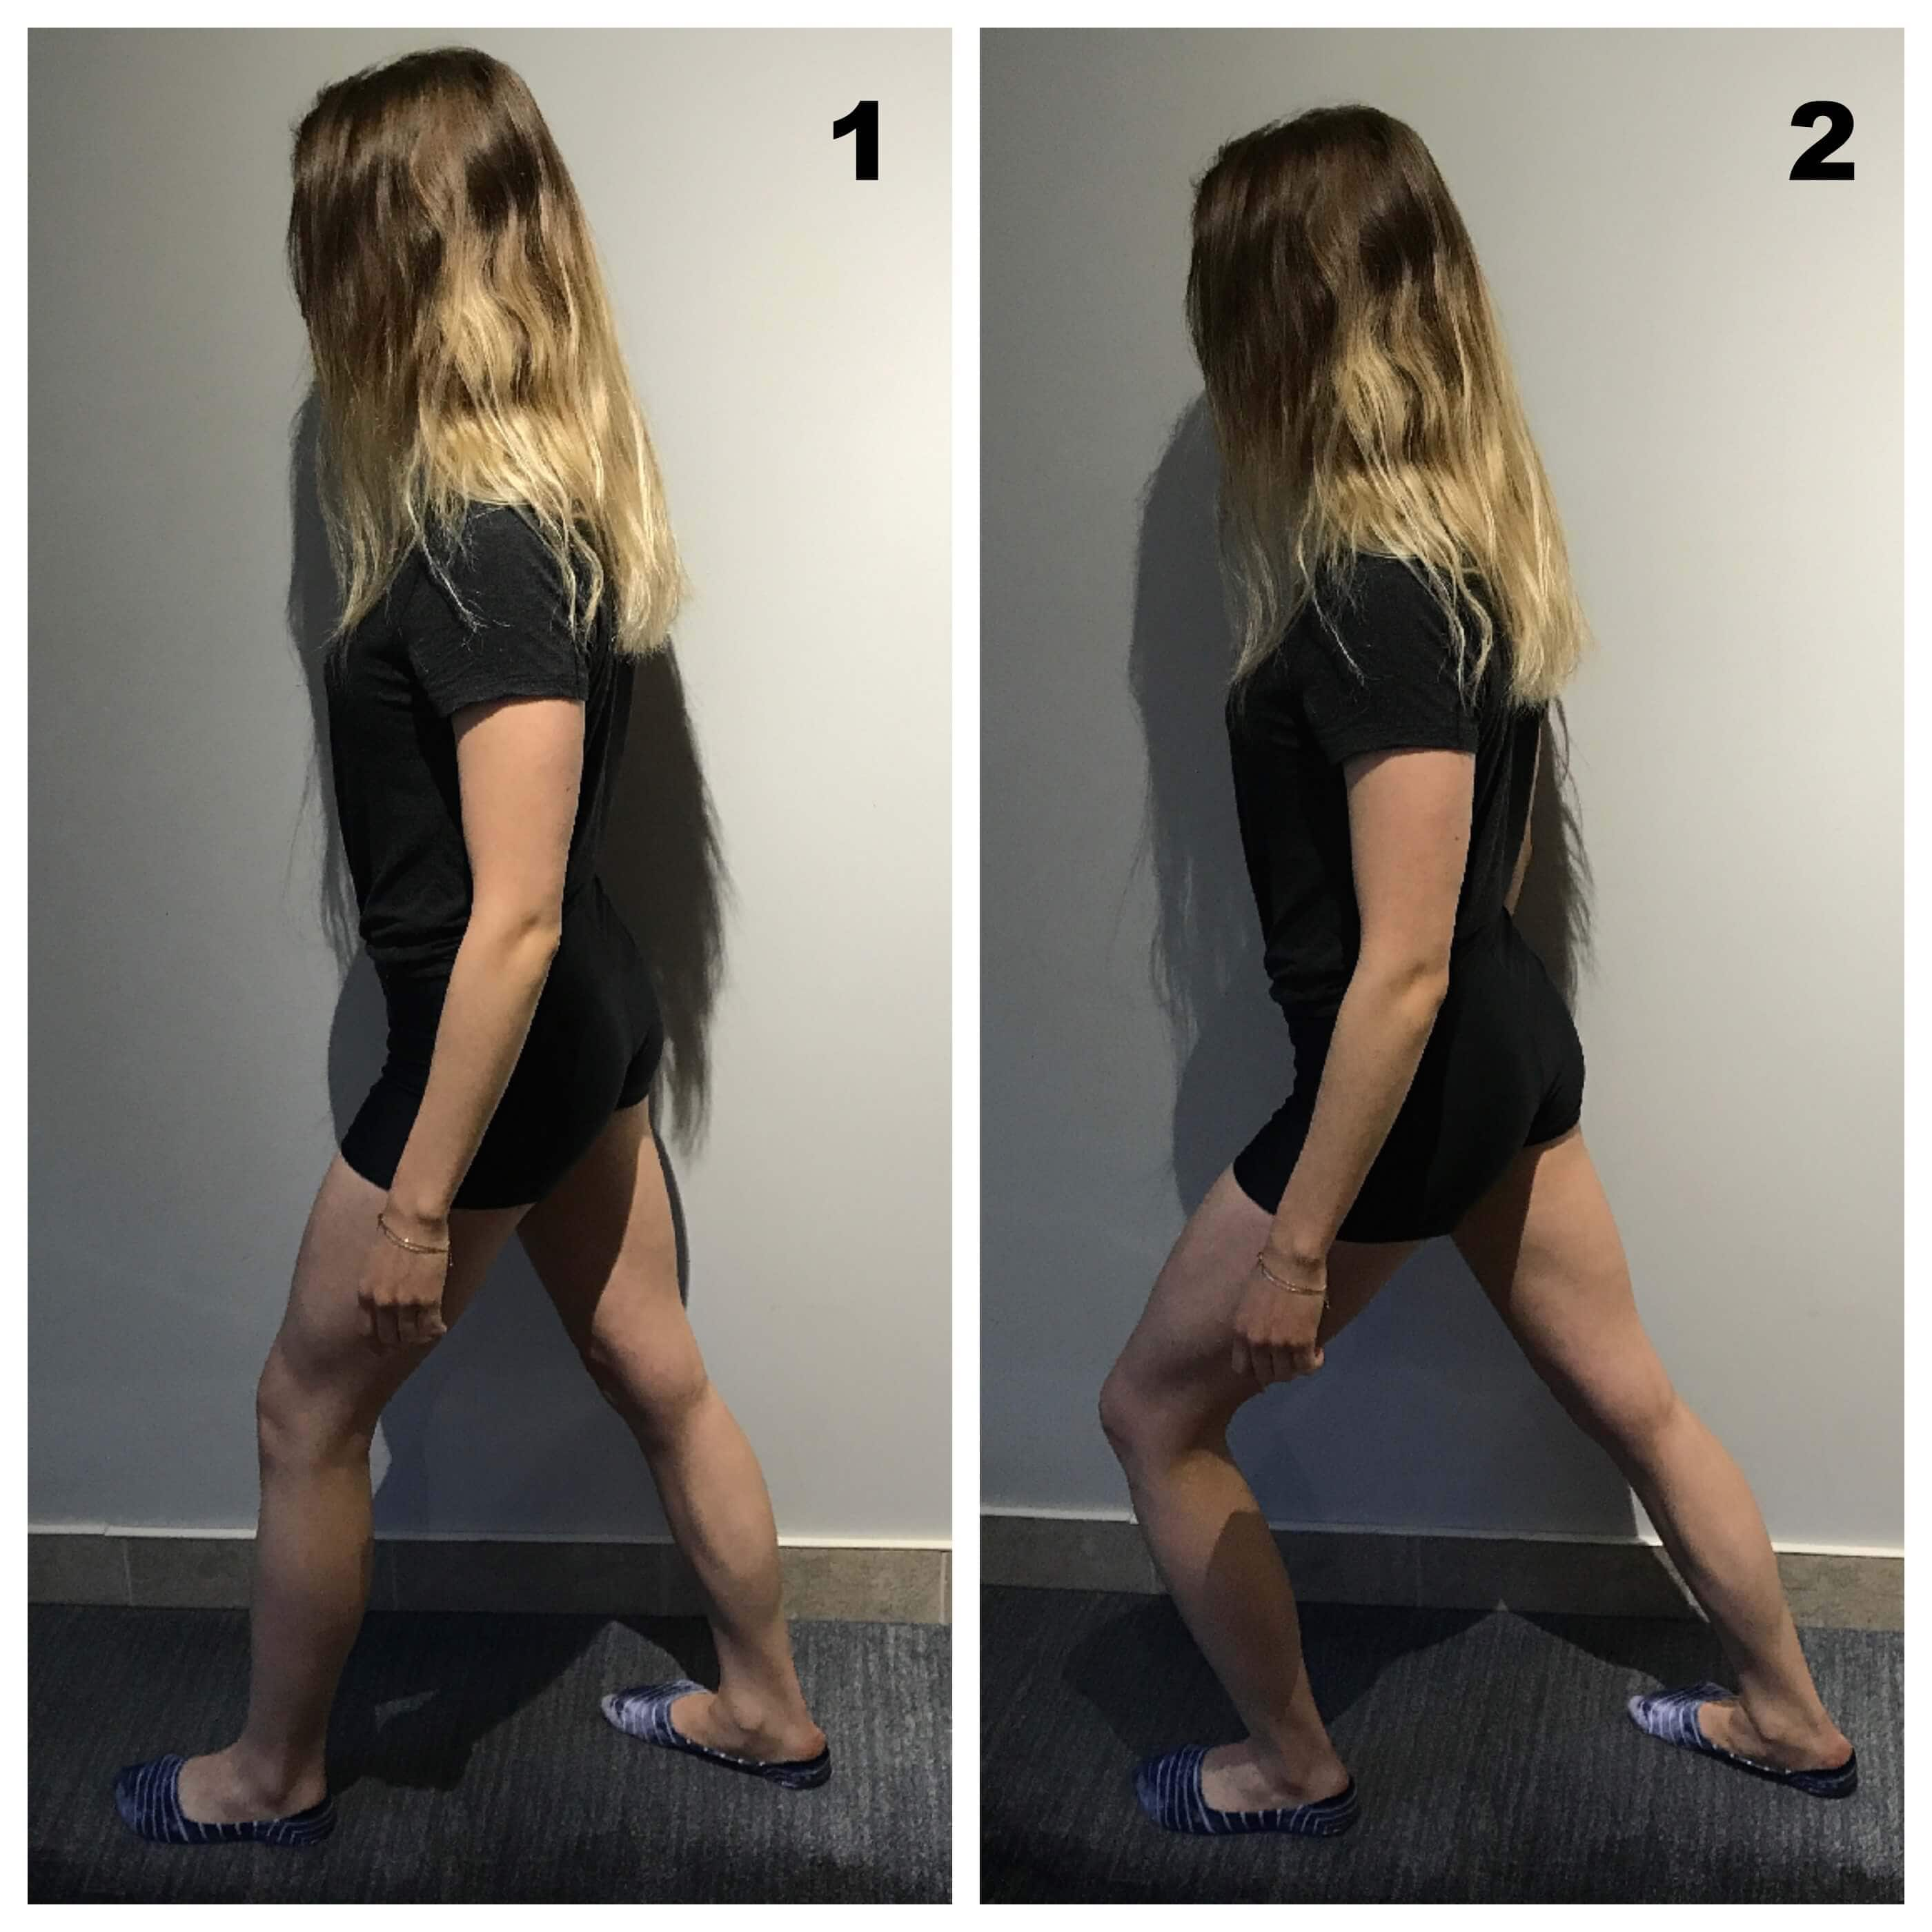 Force quadriceps debout pour syndrome femoro patellaire